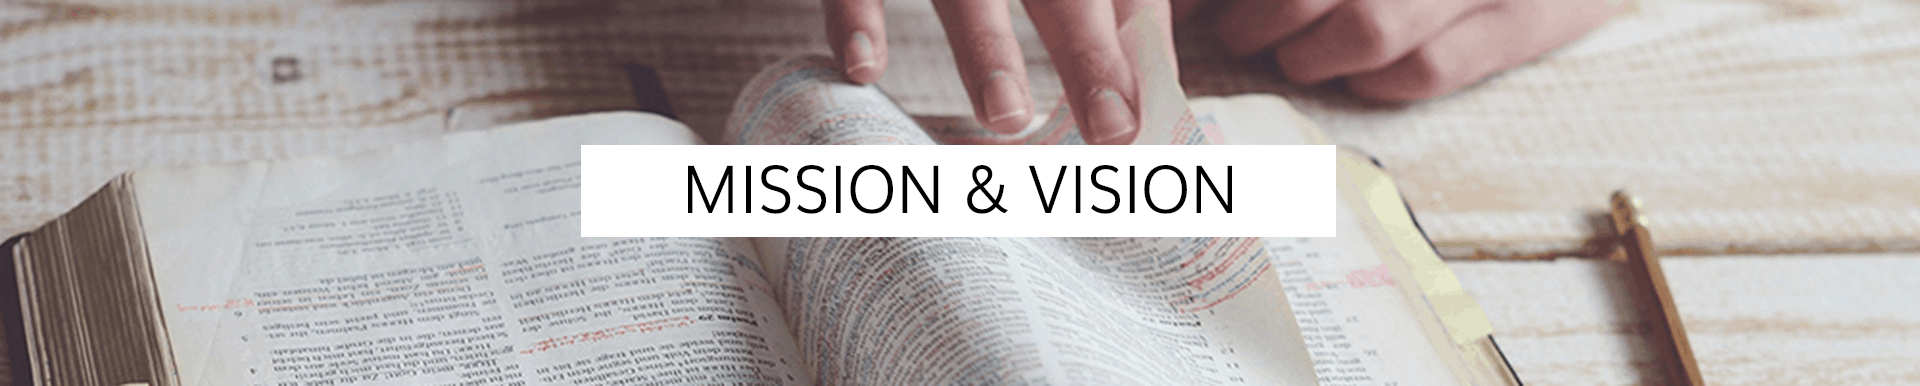 Ministry Mission & Vision